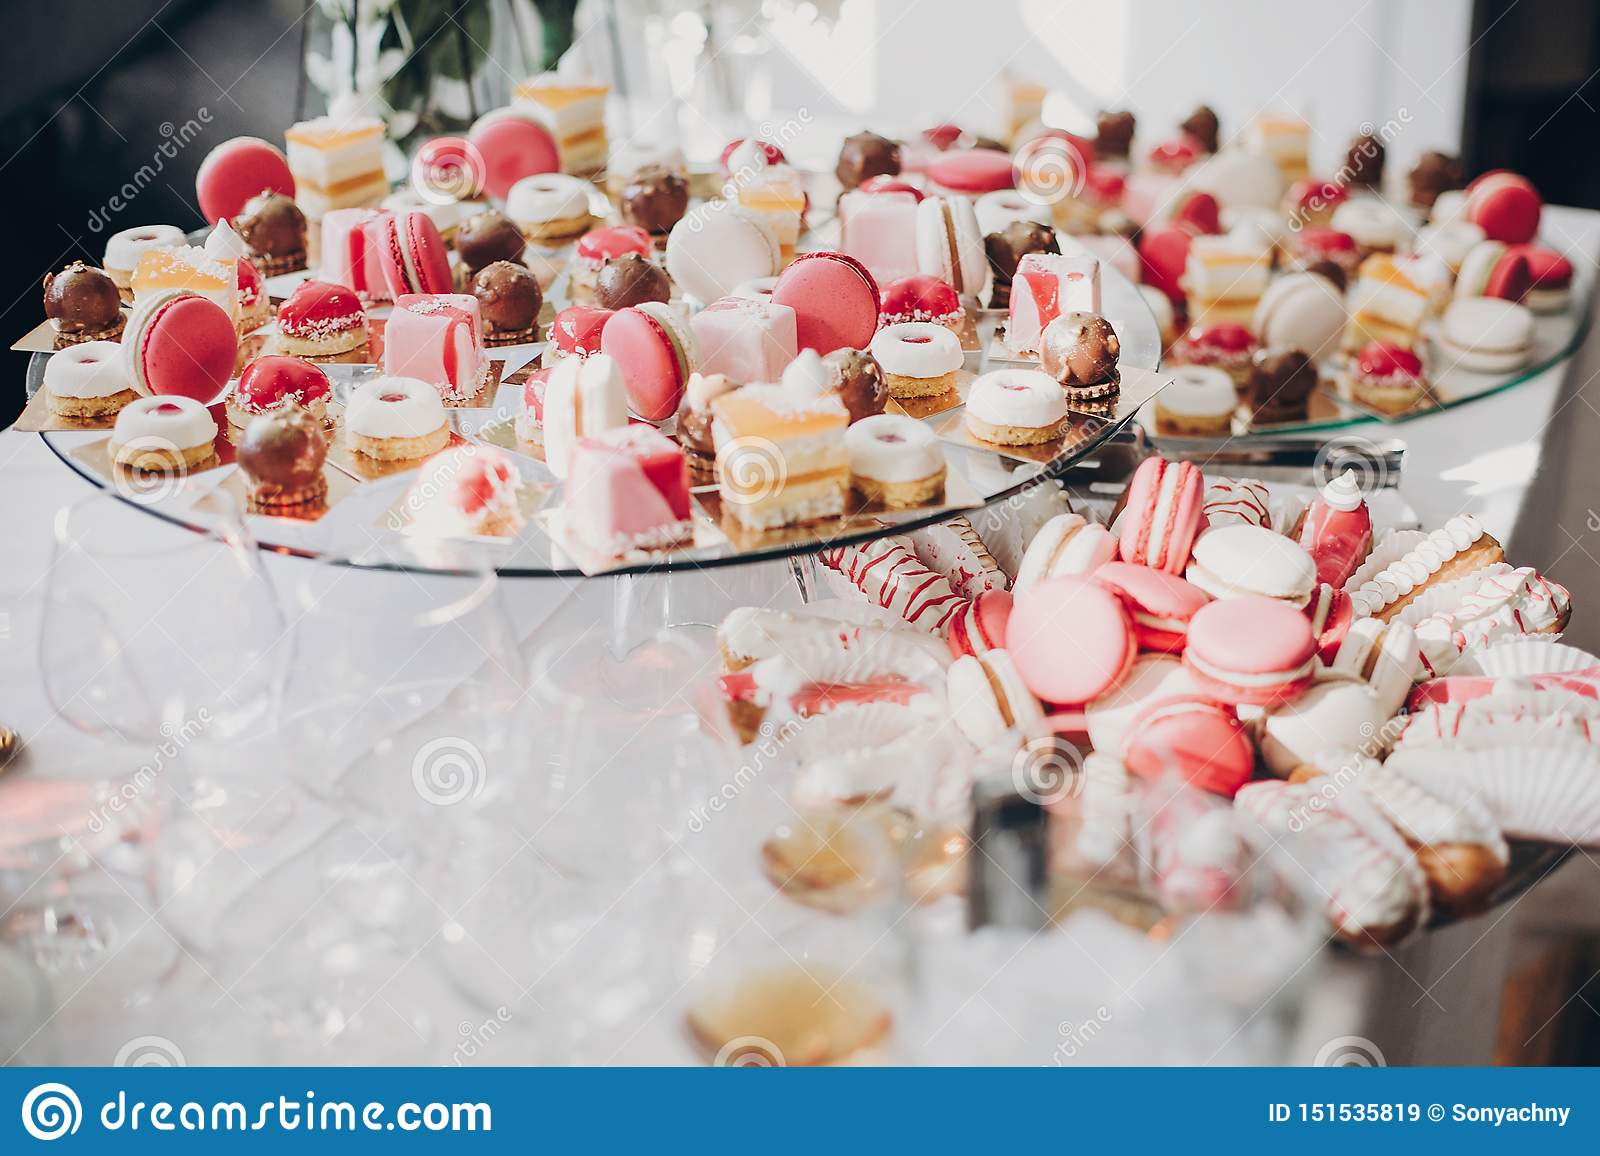 Pink And White Desserts Macarons And Cupcakes On Stand Modern Sweet Table At Wedding Or Baby Shower Luxury Catering Concept Stock Image Image Of Gift Baked 151535819